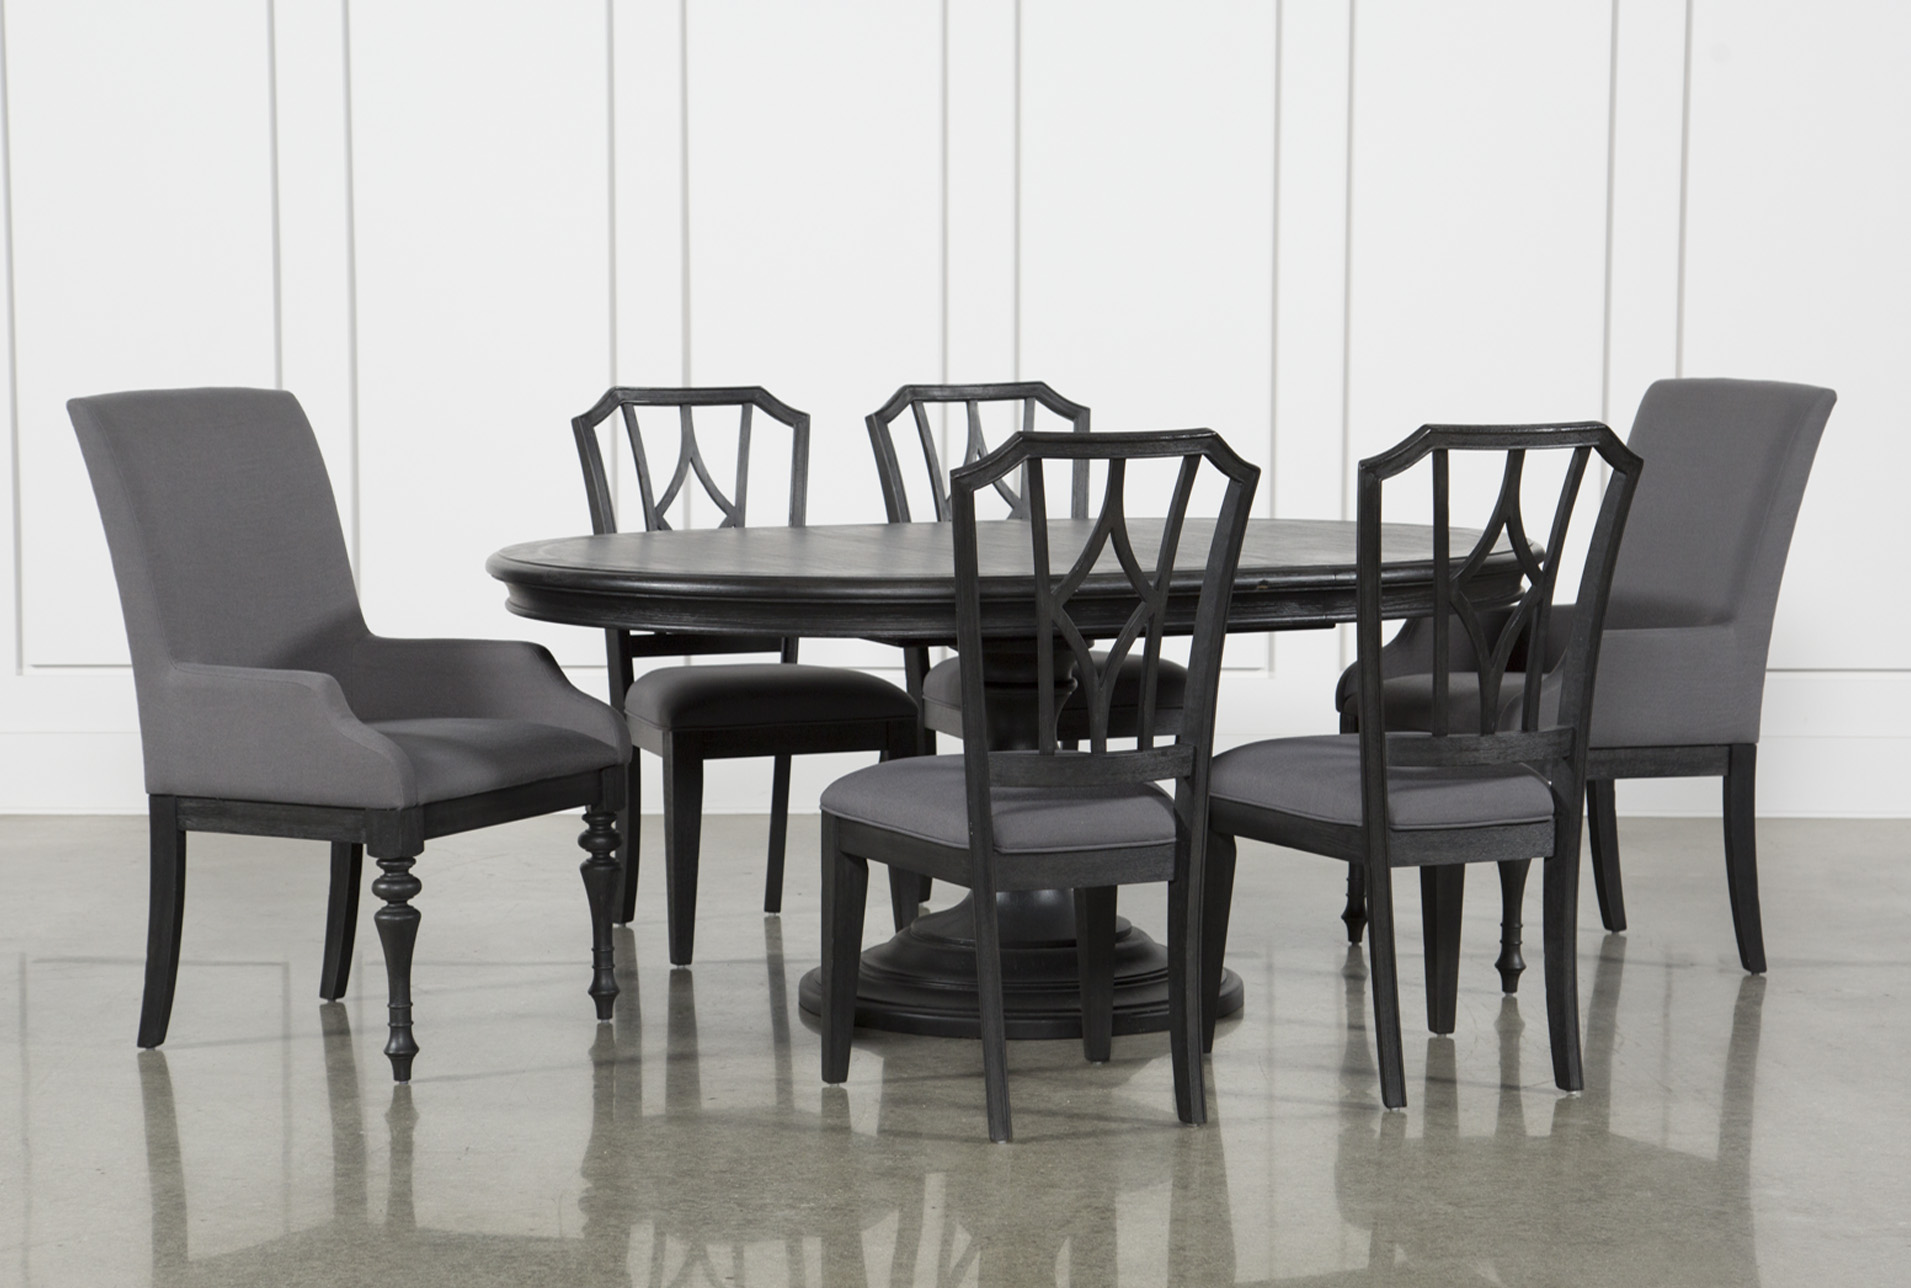 Wonderful Caira Black 7 Piece Dining Set W/Arm Chairs U0026amp; Diamond Back Chairs (Qty:  1) Has Been Successfully Added To Your Cart.